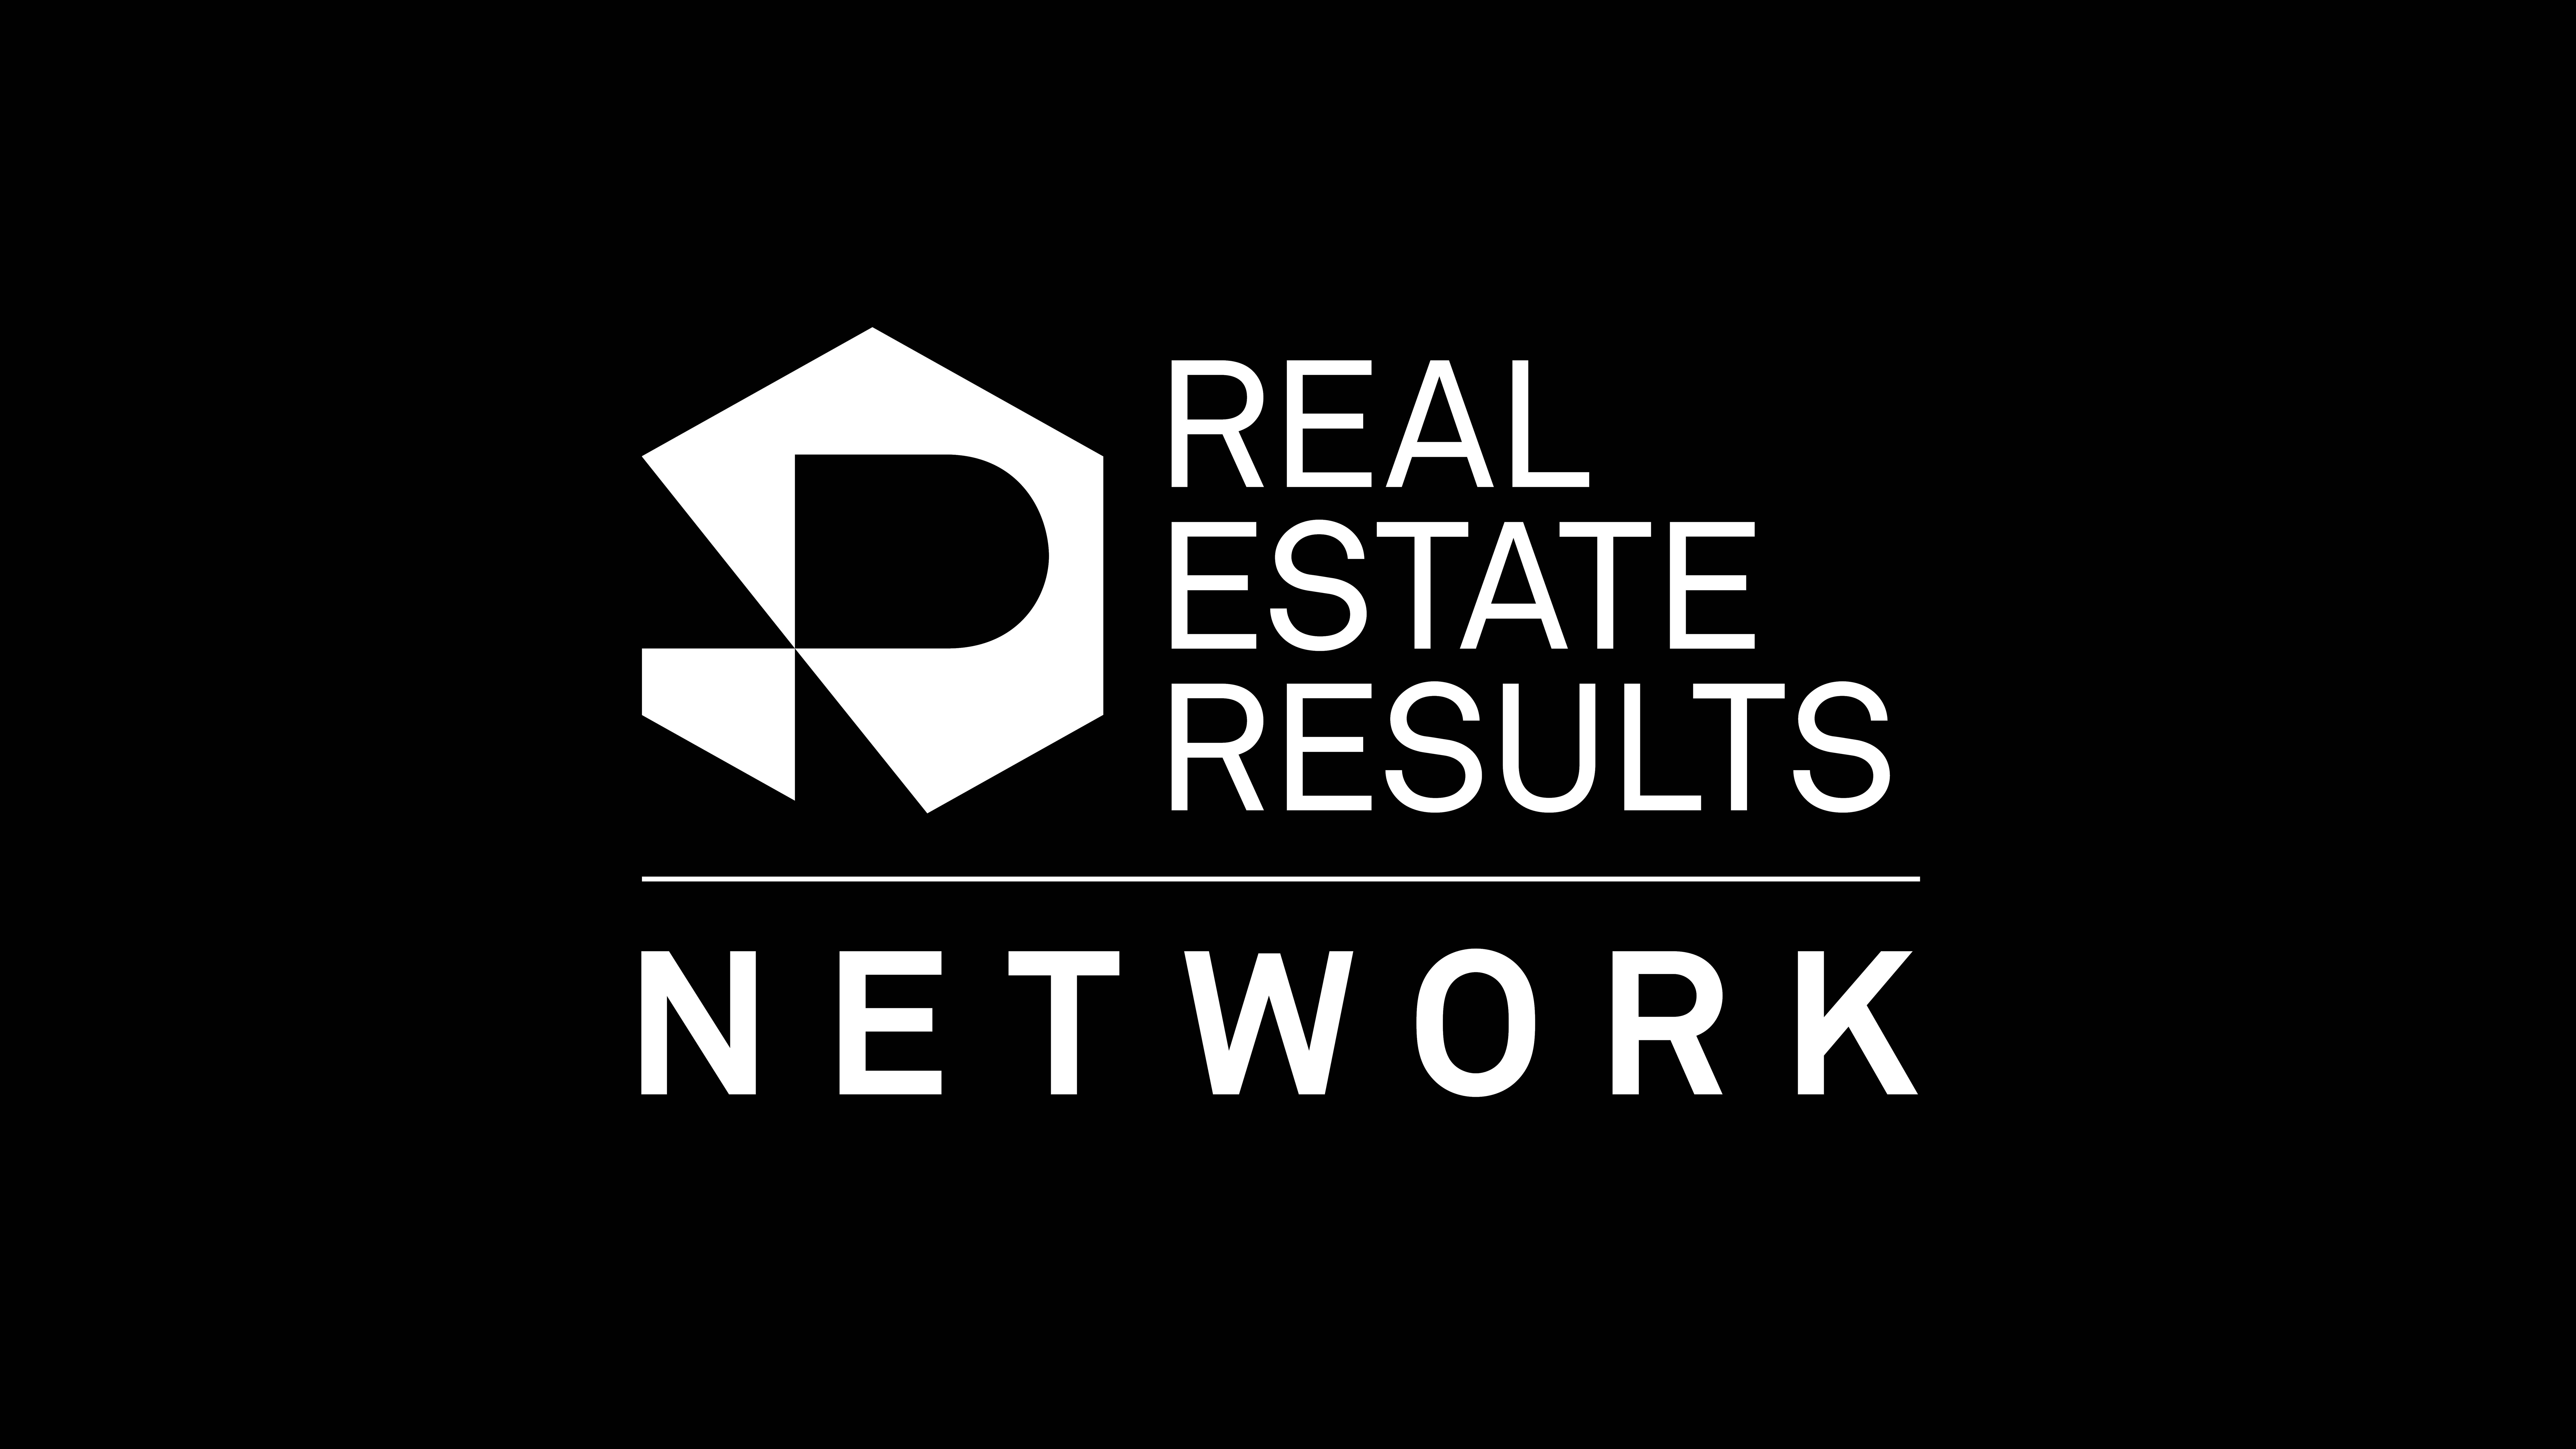 Real Estate Results Network